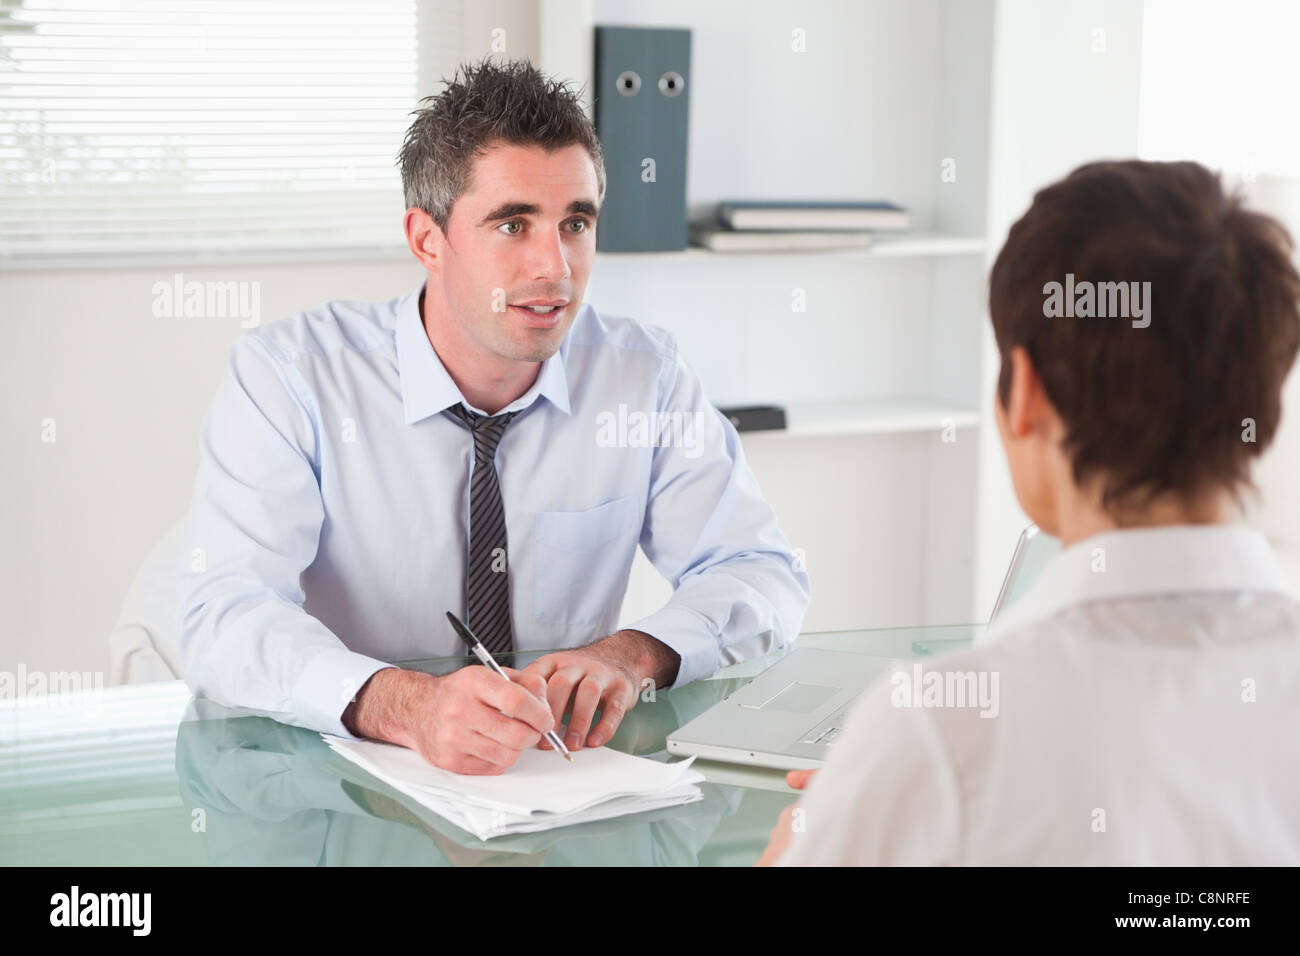 Manager interviewing a candidate - Stock Image